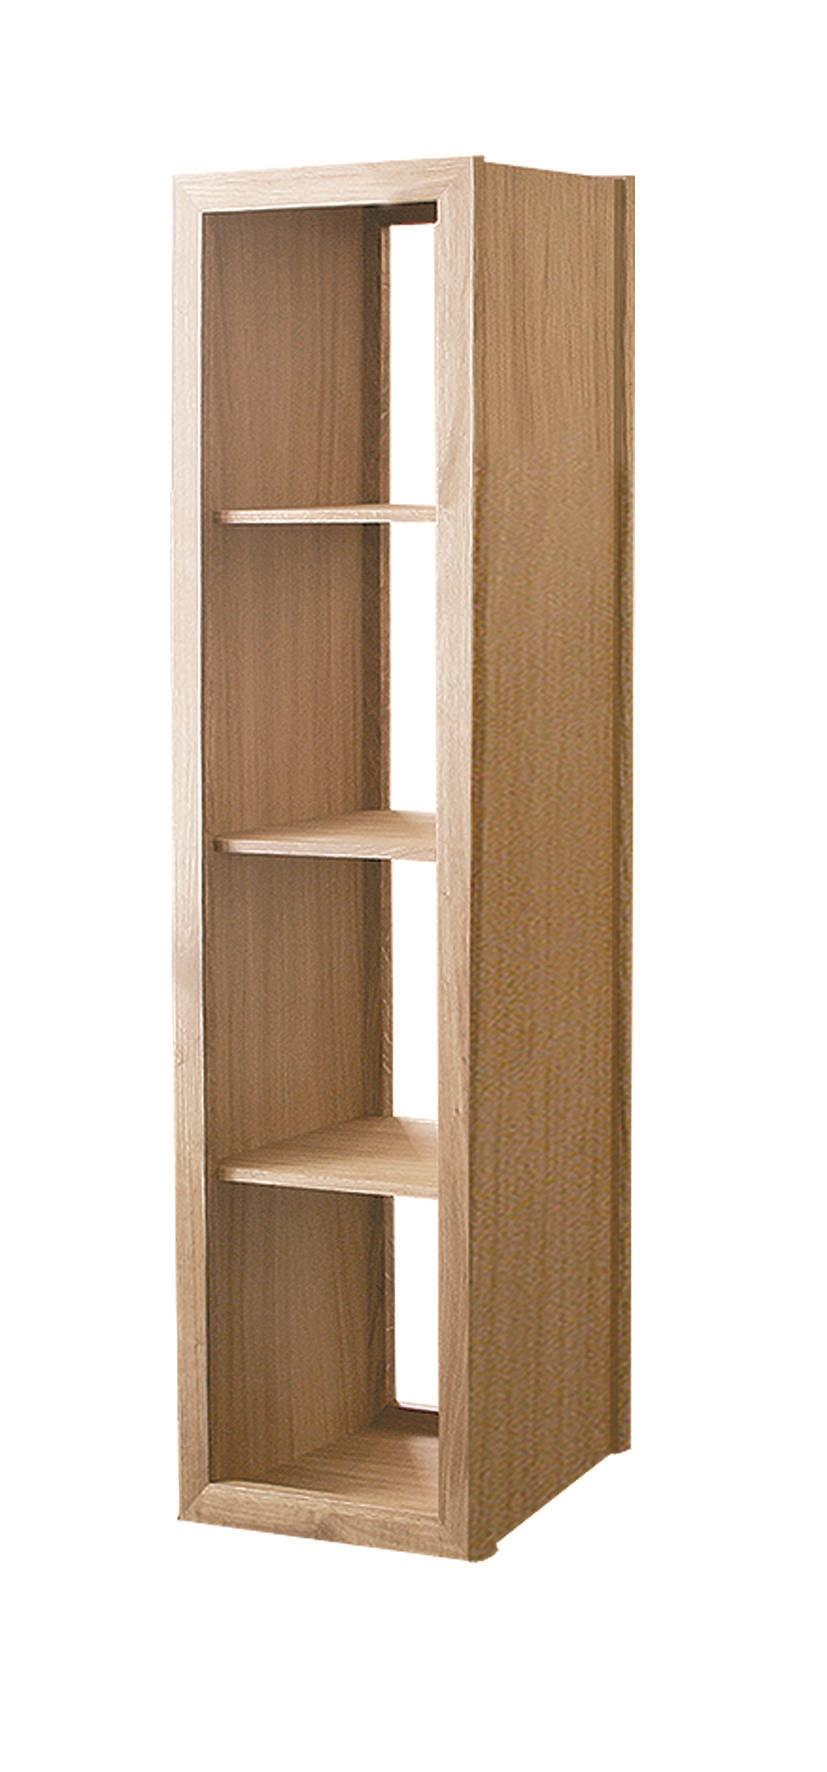 Windsor - Cube Shelf Unit - Quad WIN417